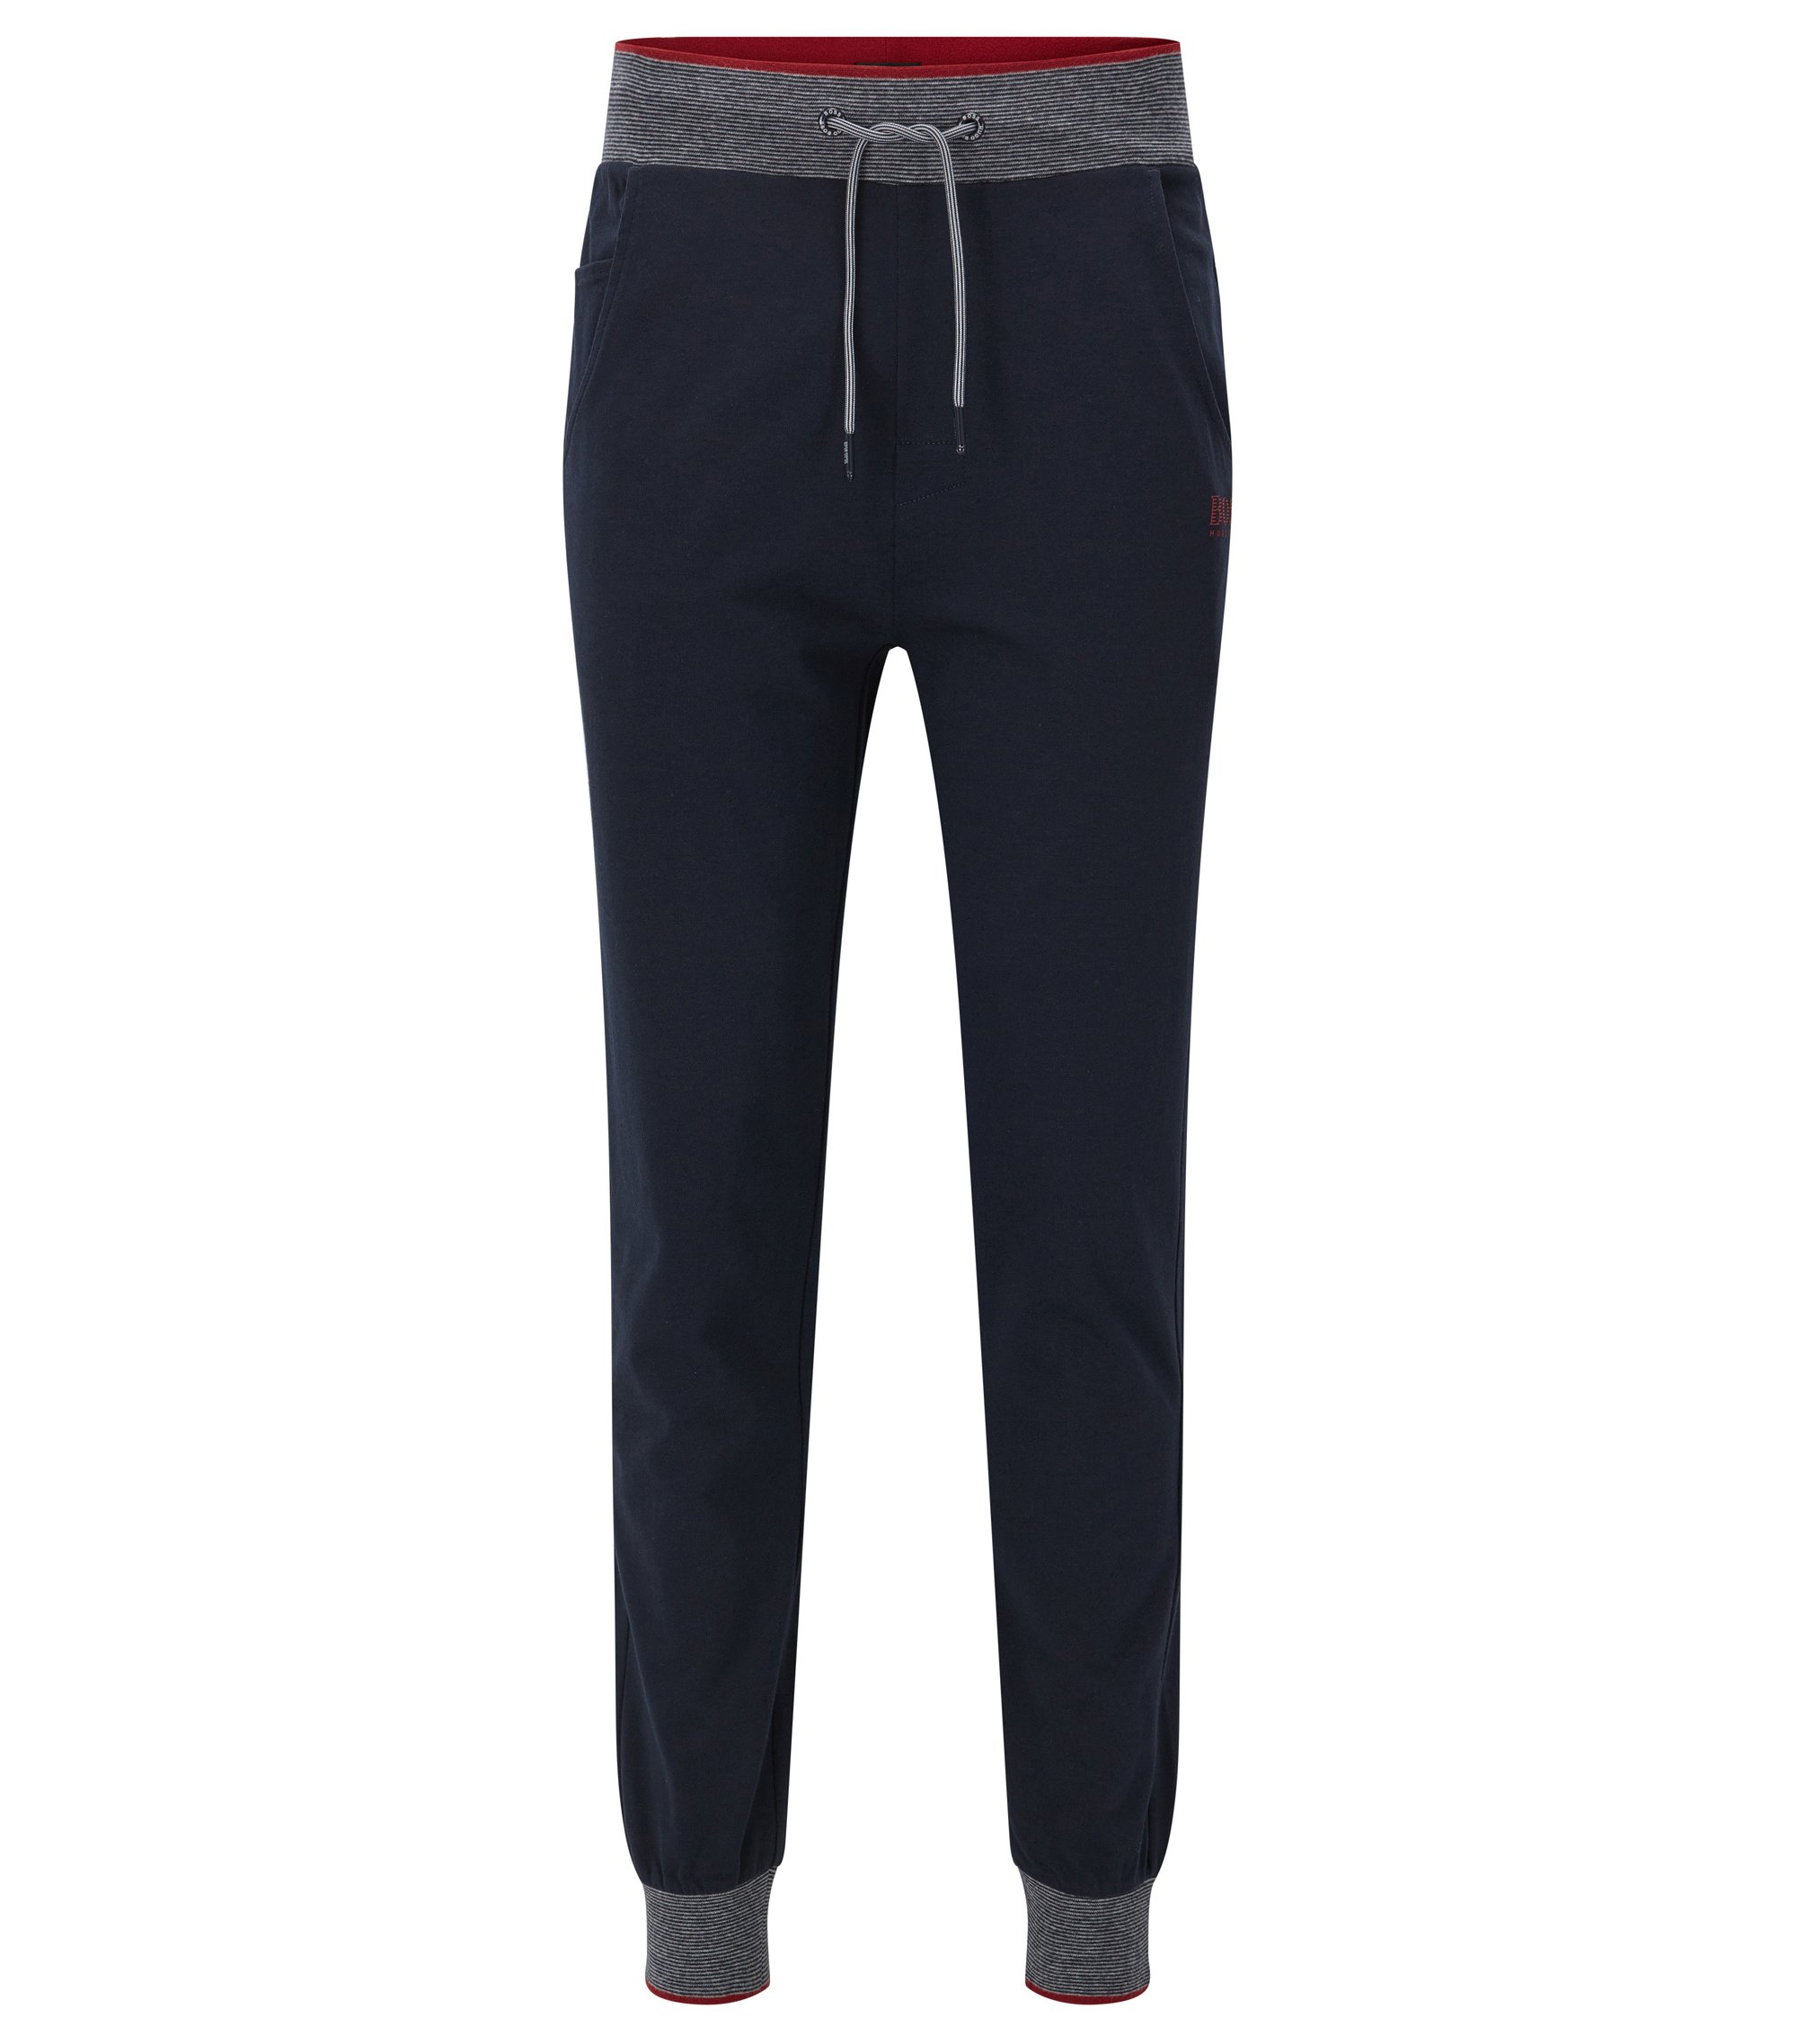 Cotton Jersey Lounge Pants | Long Pant Cuffs, Dark Blue